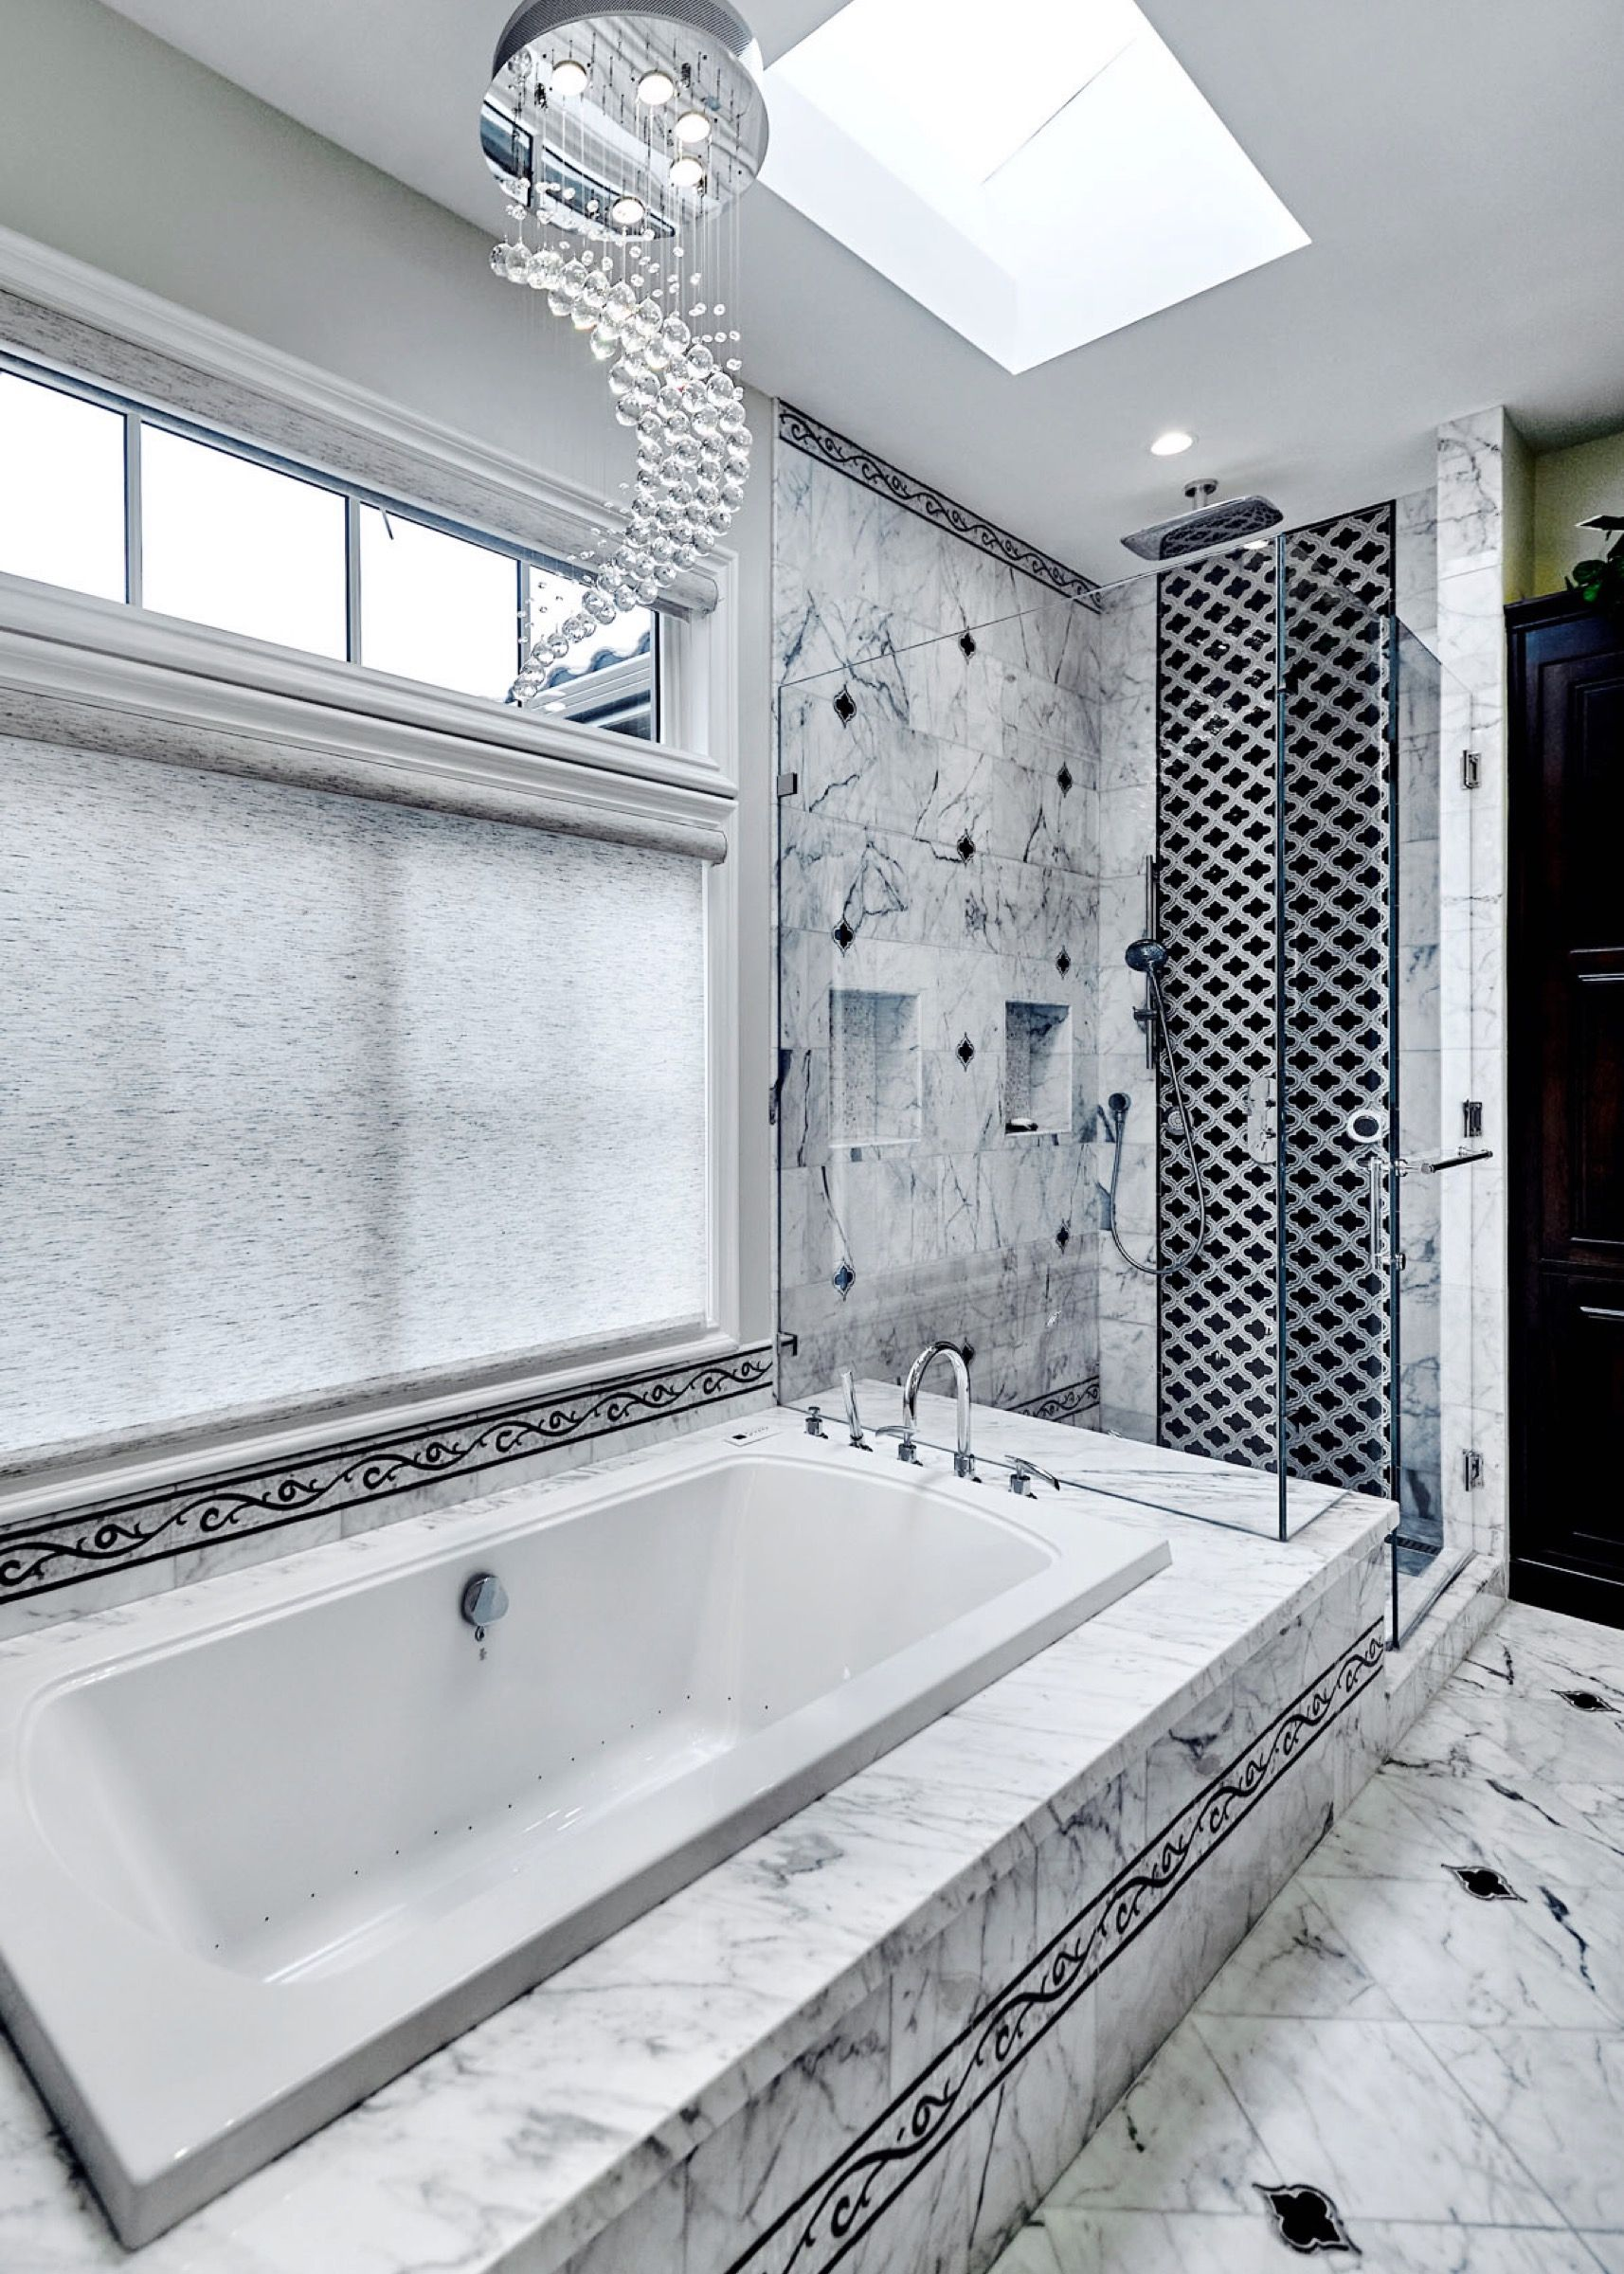 Incredible Tile And Glamorous Details Make This Master Bath A Show